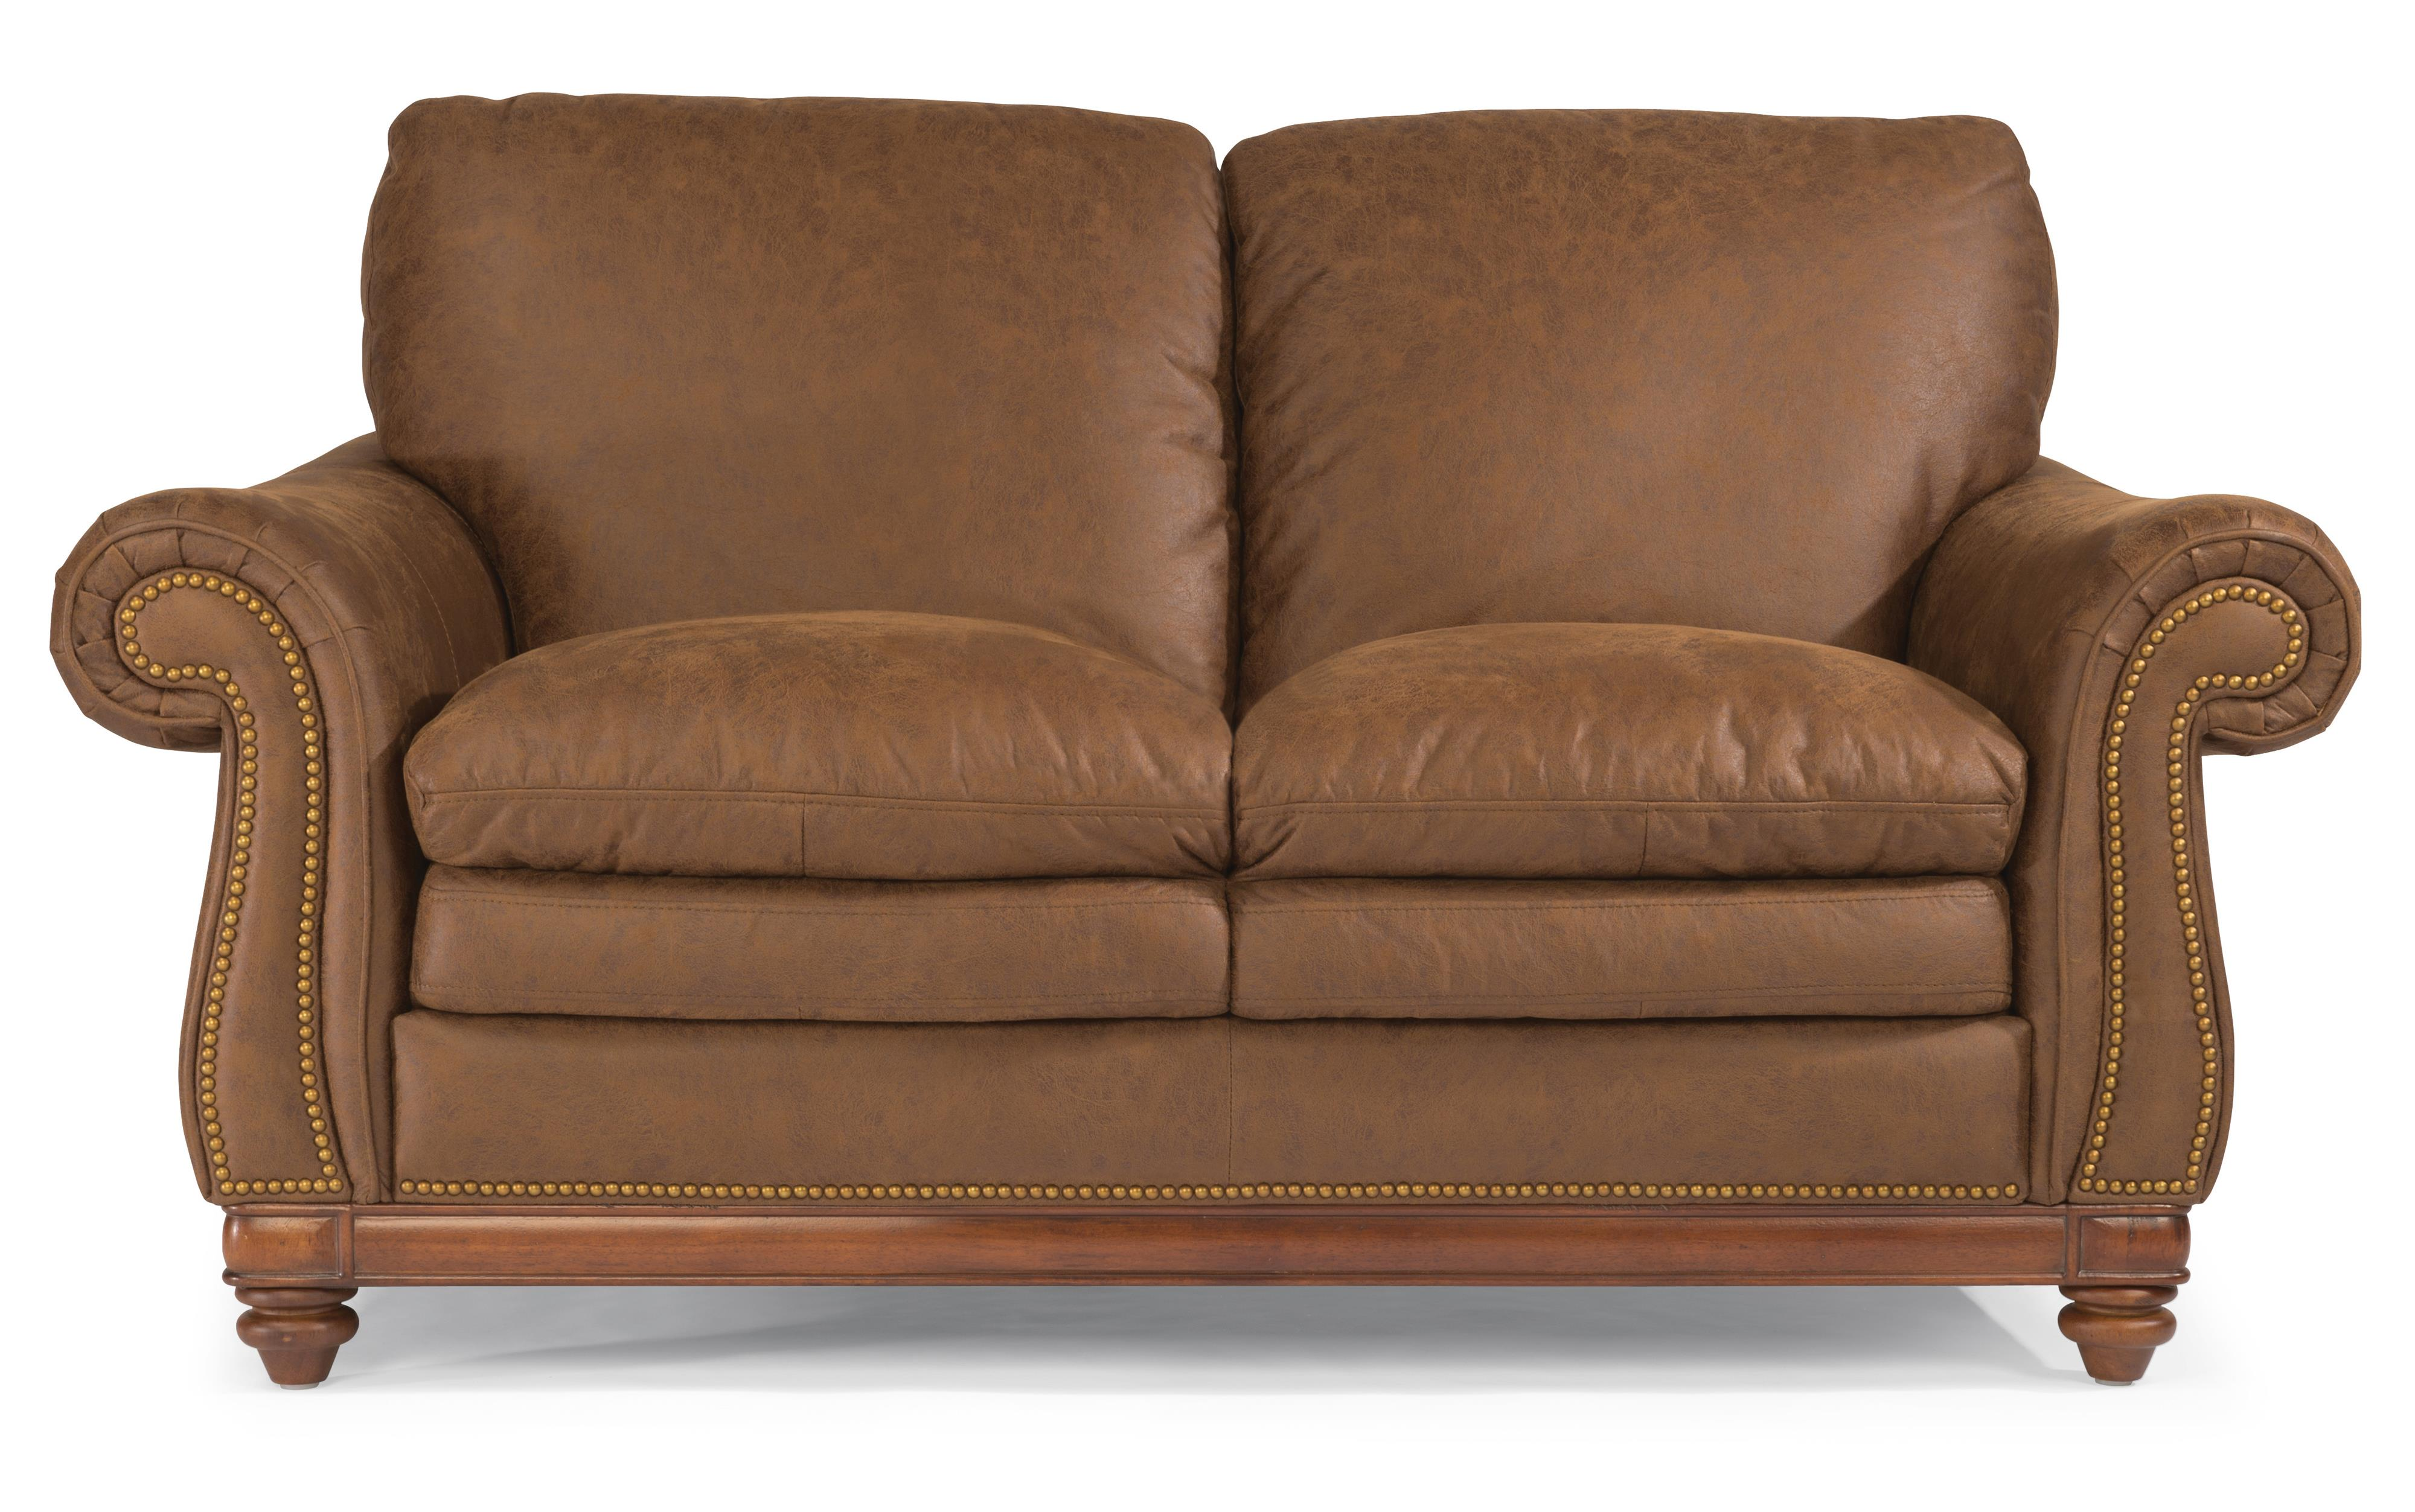 Flexsteel Belvedere Love Seat - Item Number: 1605-20